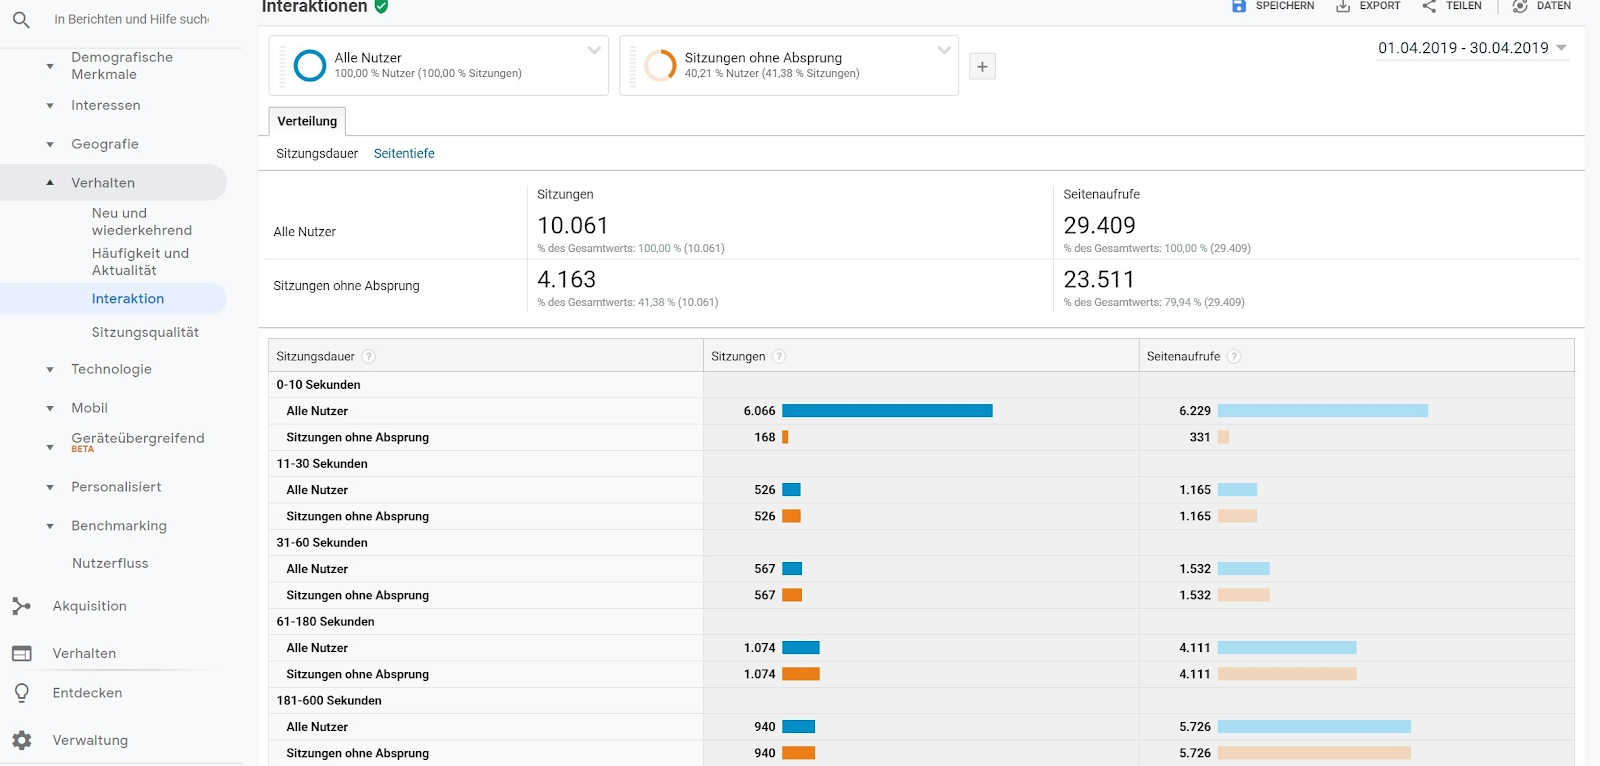 KPI-7 KPI Google Analytics analyse